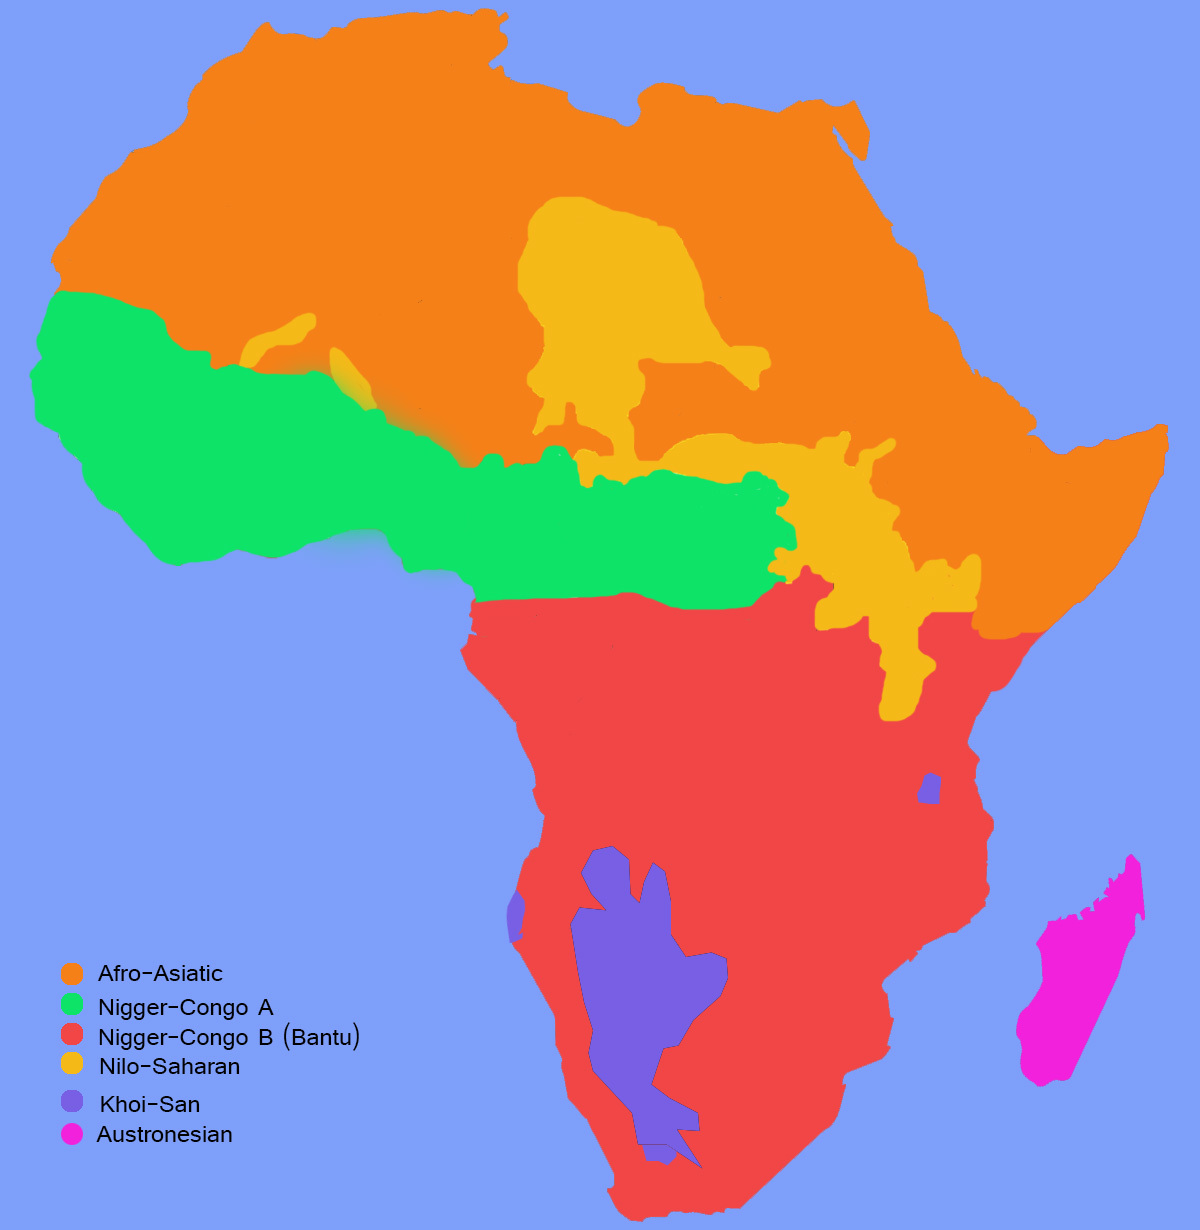 The figure shows a map of Africa with the distribution of Bantu languages. It is the most important linguistic family in Africa and encompasses most of Sub Saharan Africa except the region occupied by Khoisan (Kalahari desert) and th Nilo-Saharan family, South of Sahara, around the Nile river, along some part of the Sahel in the South of Sahara.